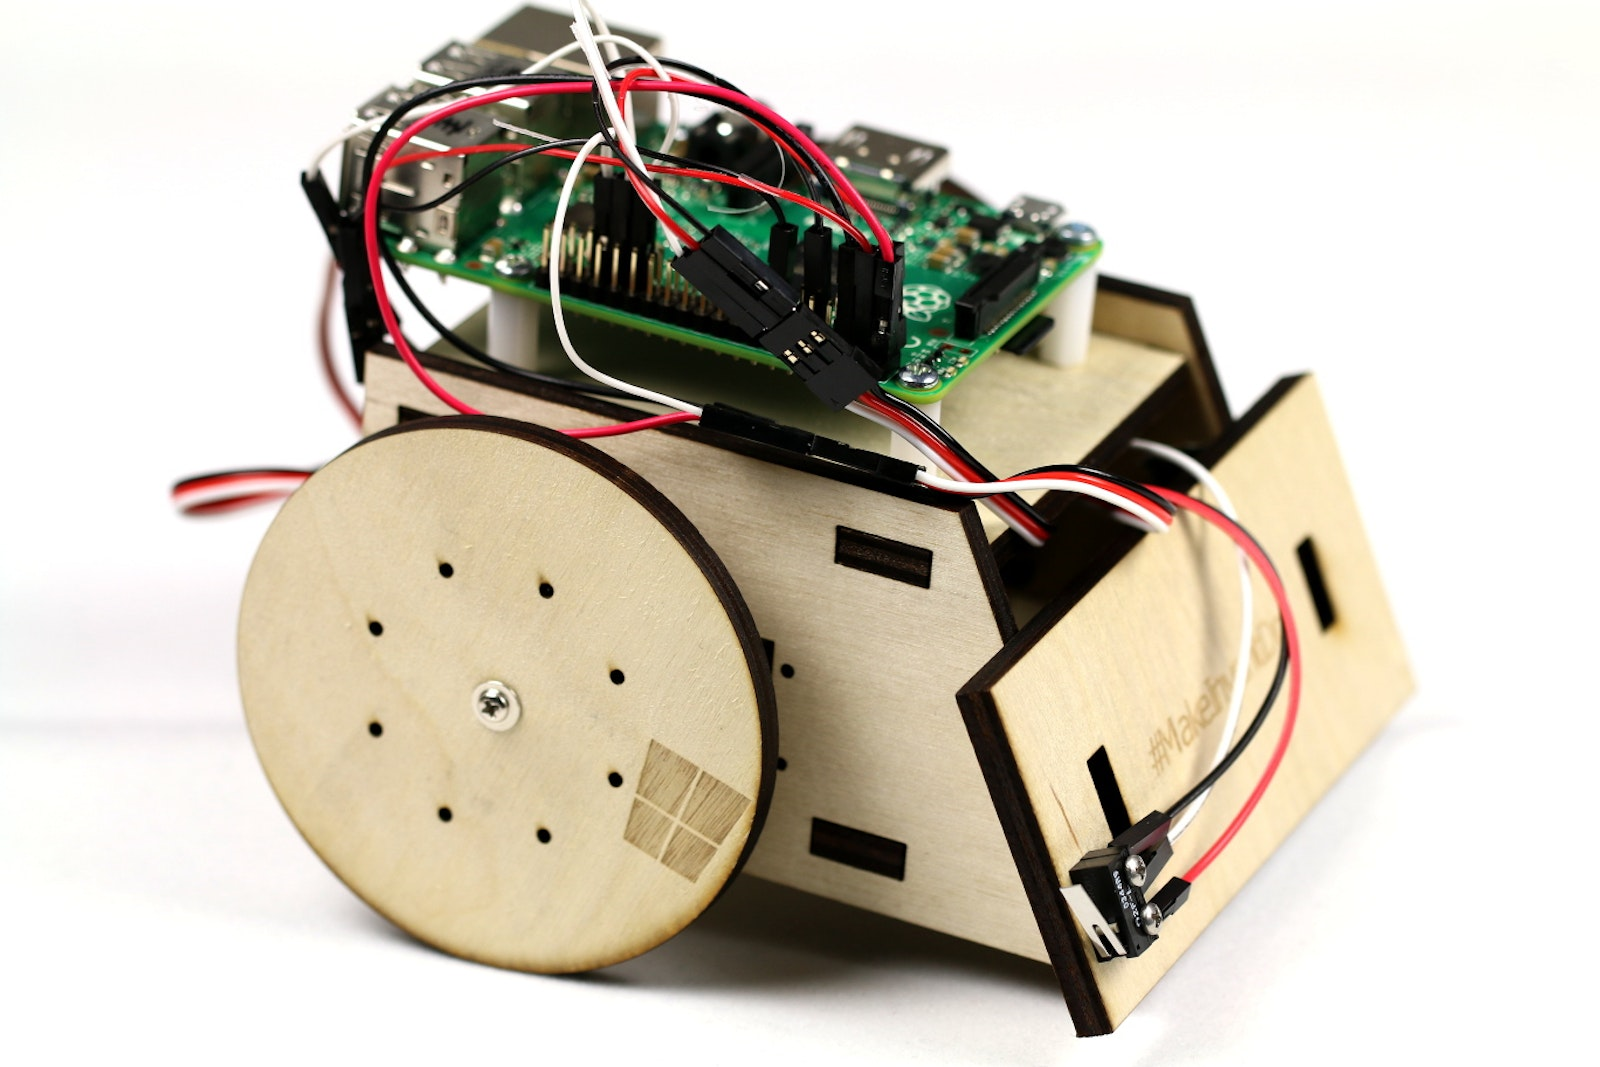 Robot kit Windows 10 Raspberry Pi 2